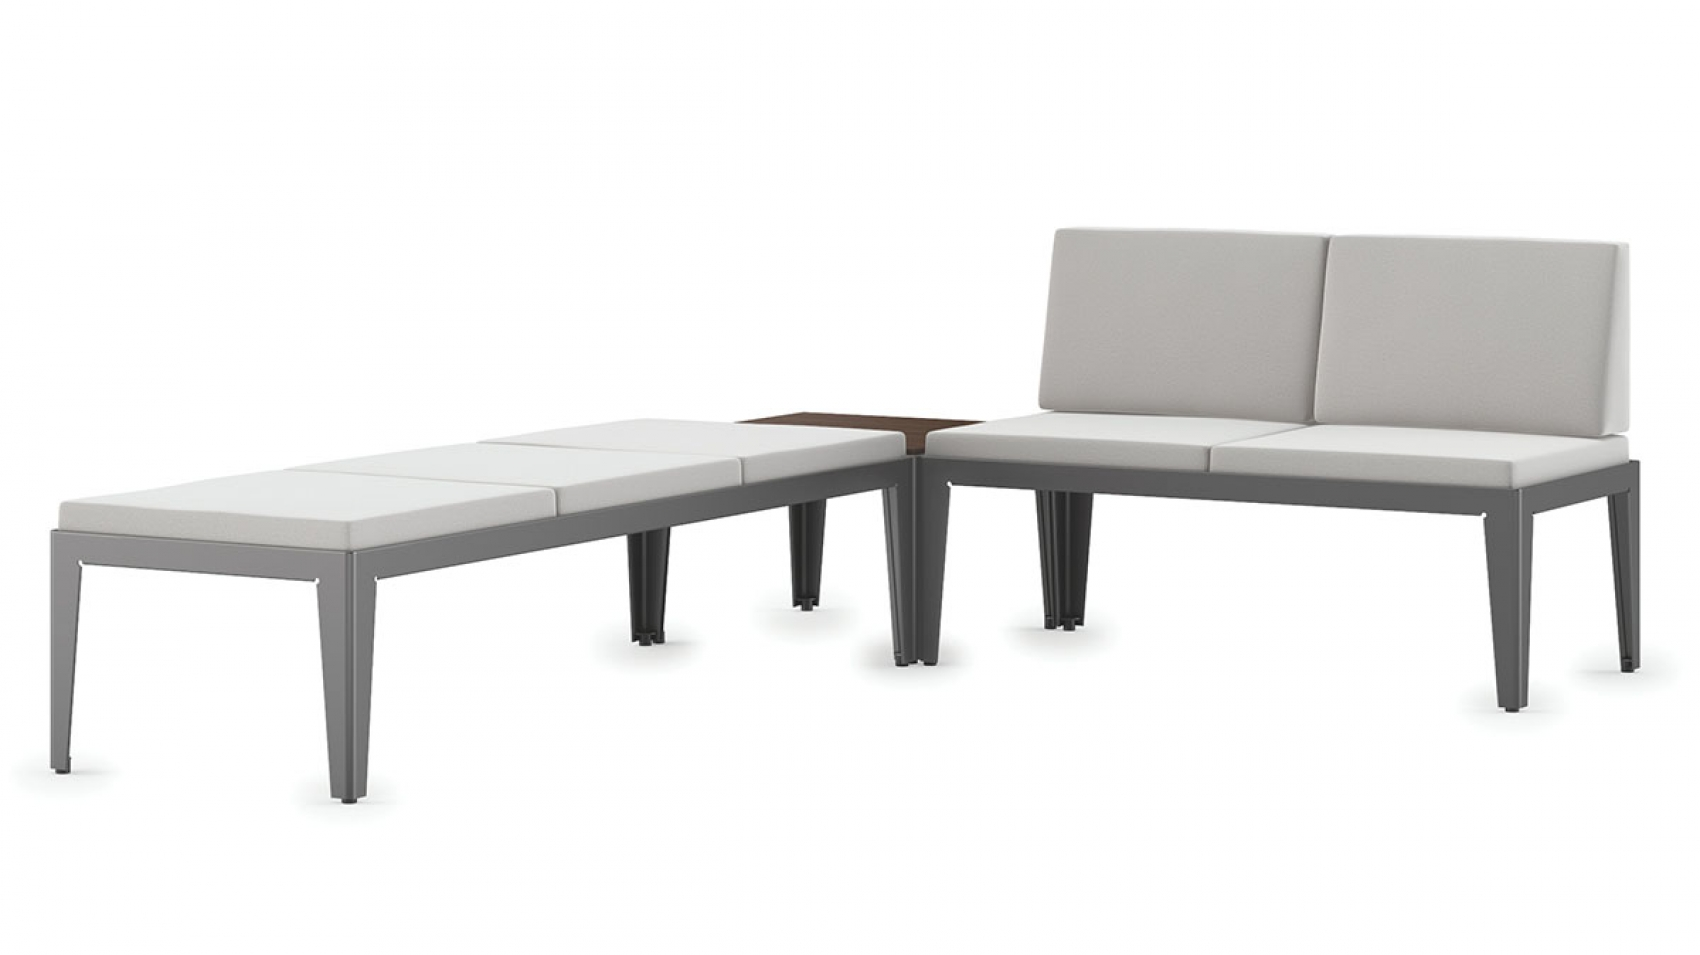 B nda is pure and simple modern lounge furniture that delivers  configurability for sensible and adaptable social  public spaces. B nda   Loewenstein